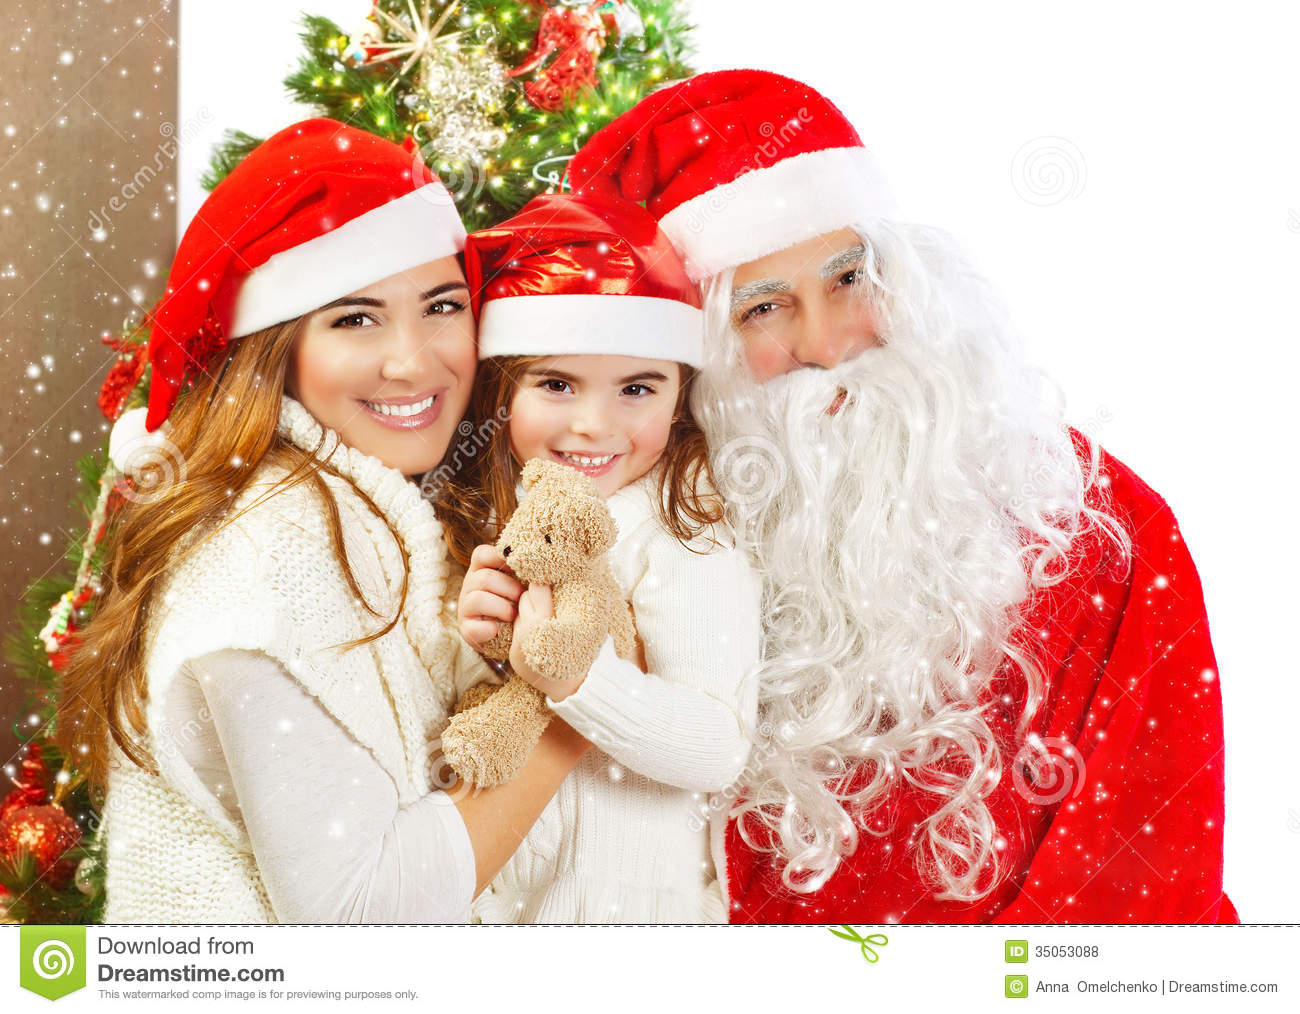 Red santa claus costume christmas magic happiness and love concept